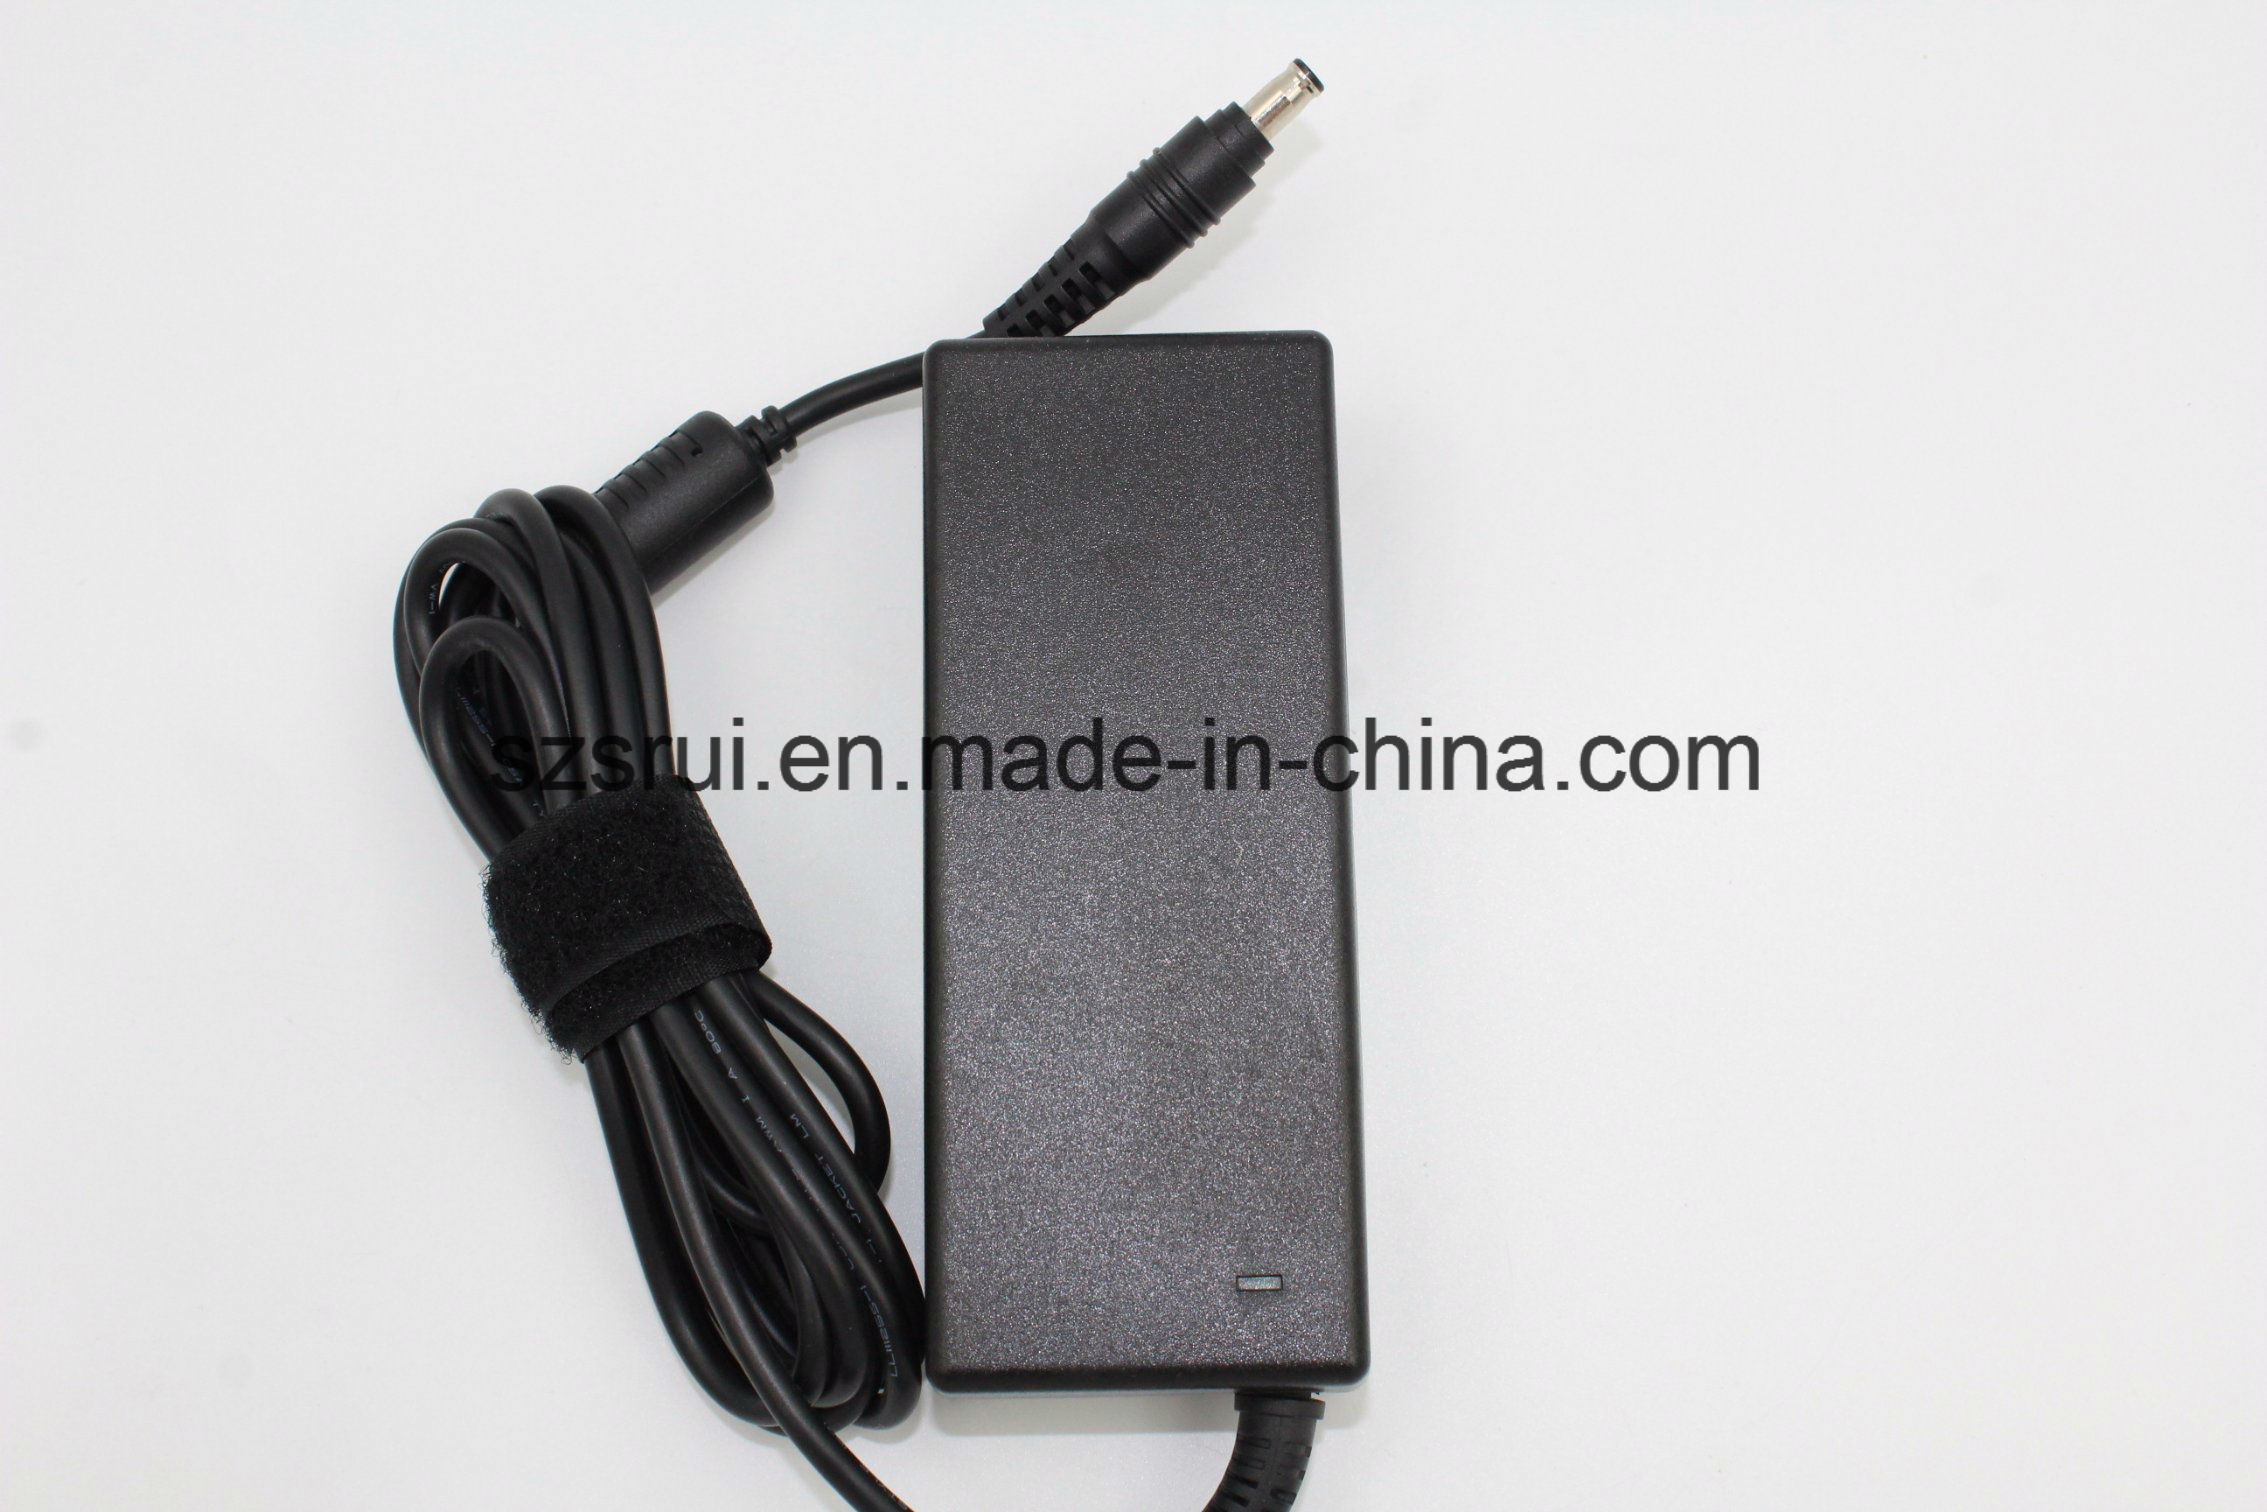 Original Power Adapter for Samsung 19V 4.74A 90W